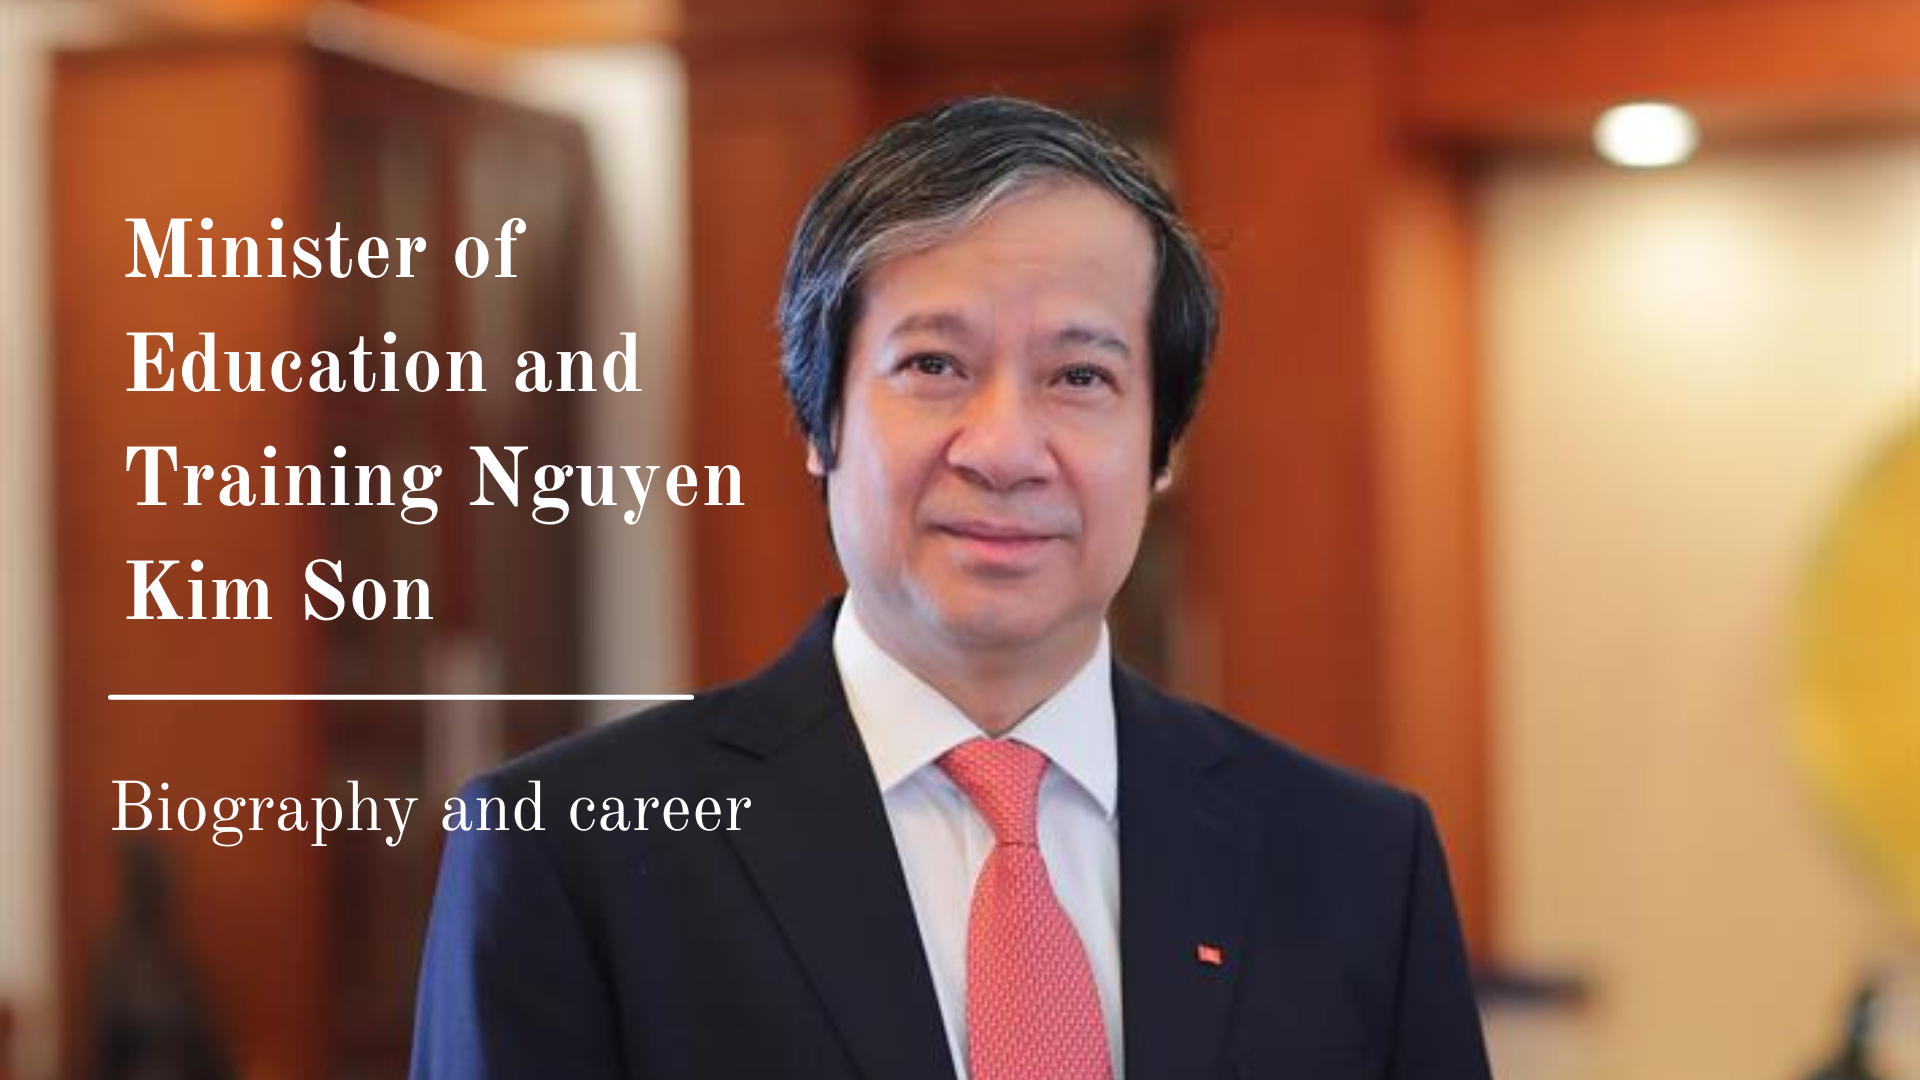 Minister of Education and Training Nguyen Kim Son: Biography, Positions and Working History